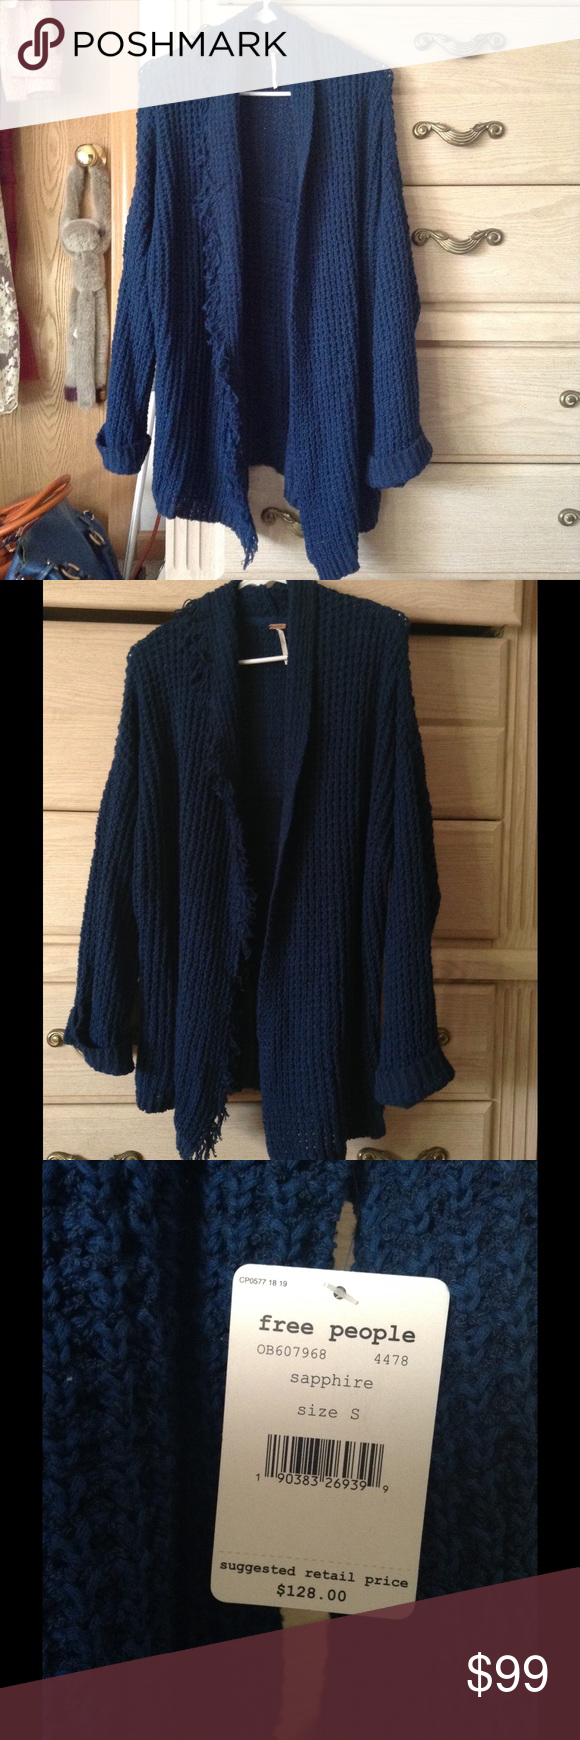 Free People cozy knit sweater Brand new, never worn. Love the blue ...